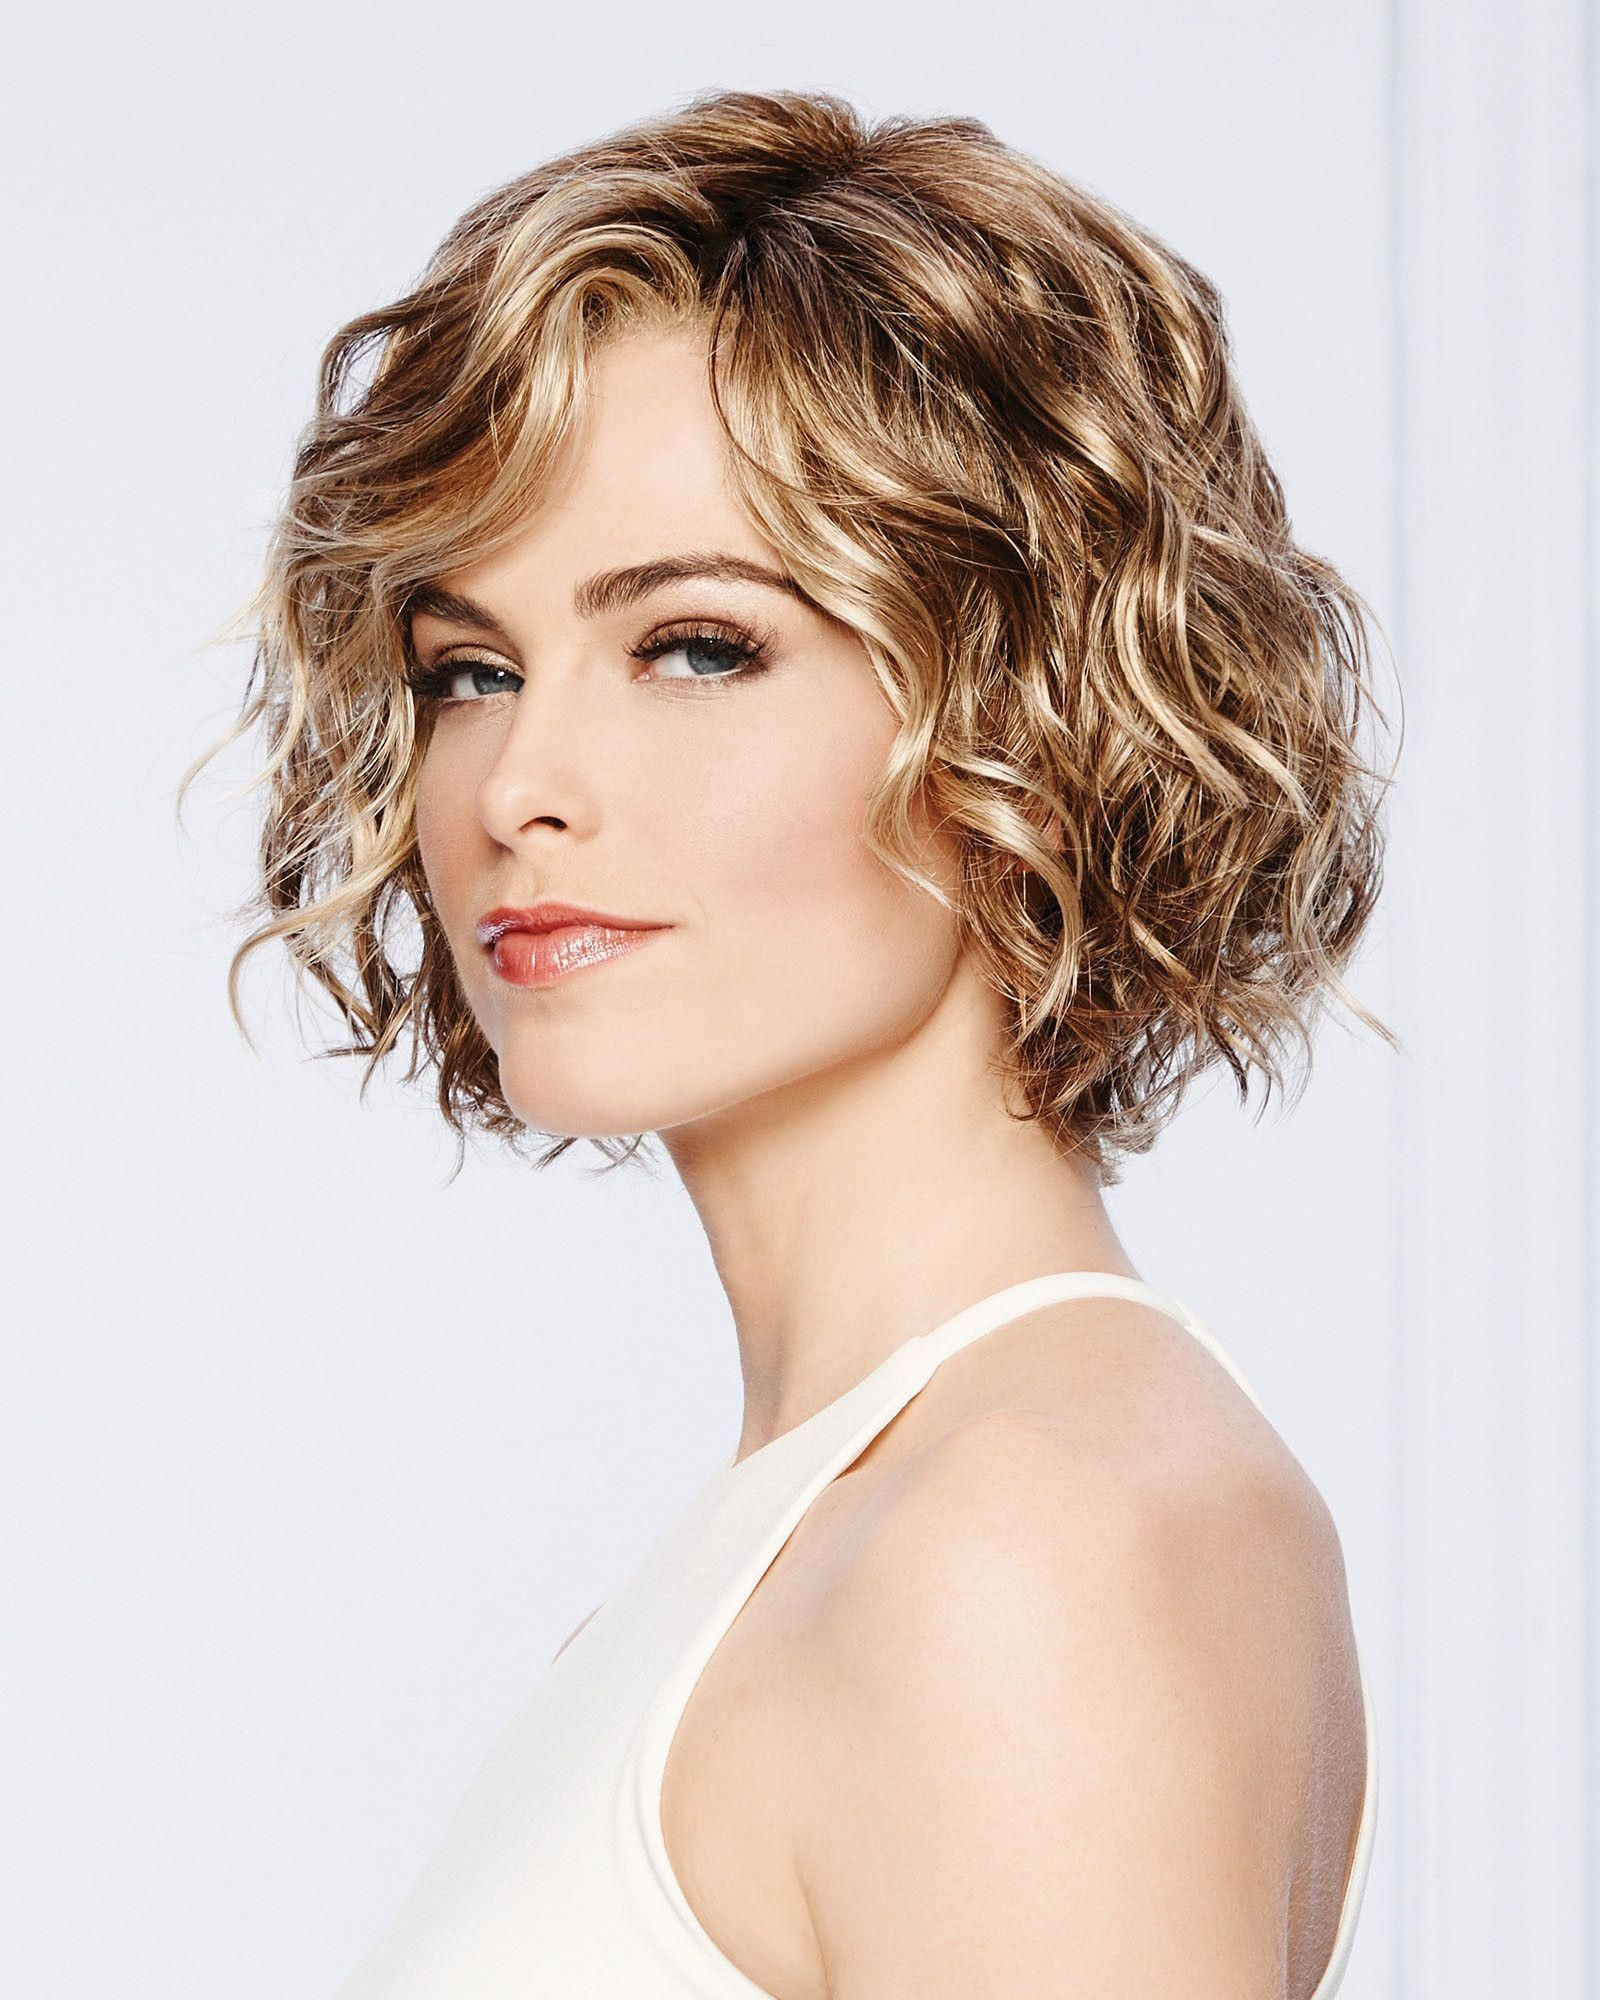 Thoroughly Modern Remarkably Natural Looking Unstructured Air Dried Waves And A Light Comfortable Hair Styles Curly Hair Styles Naturally Short Hair Styles